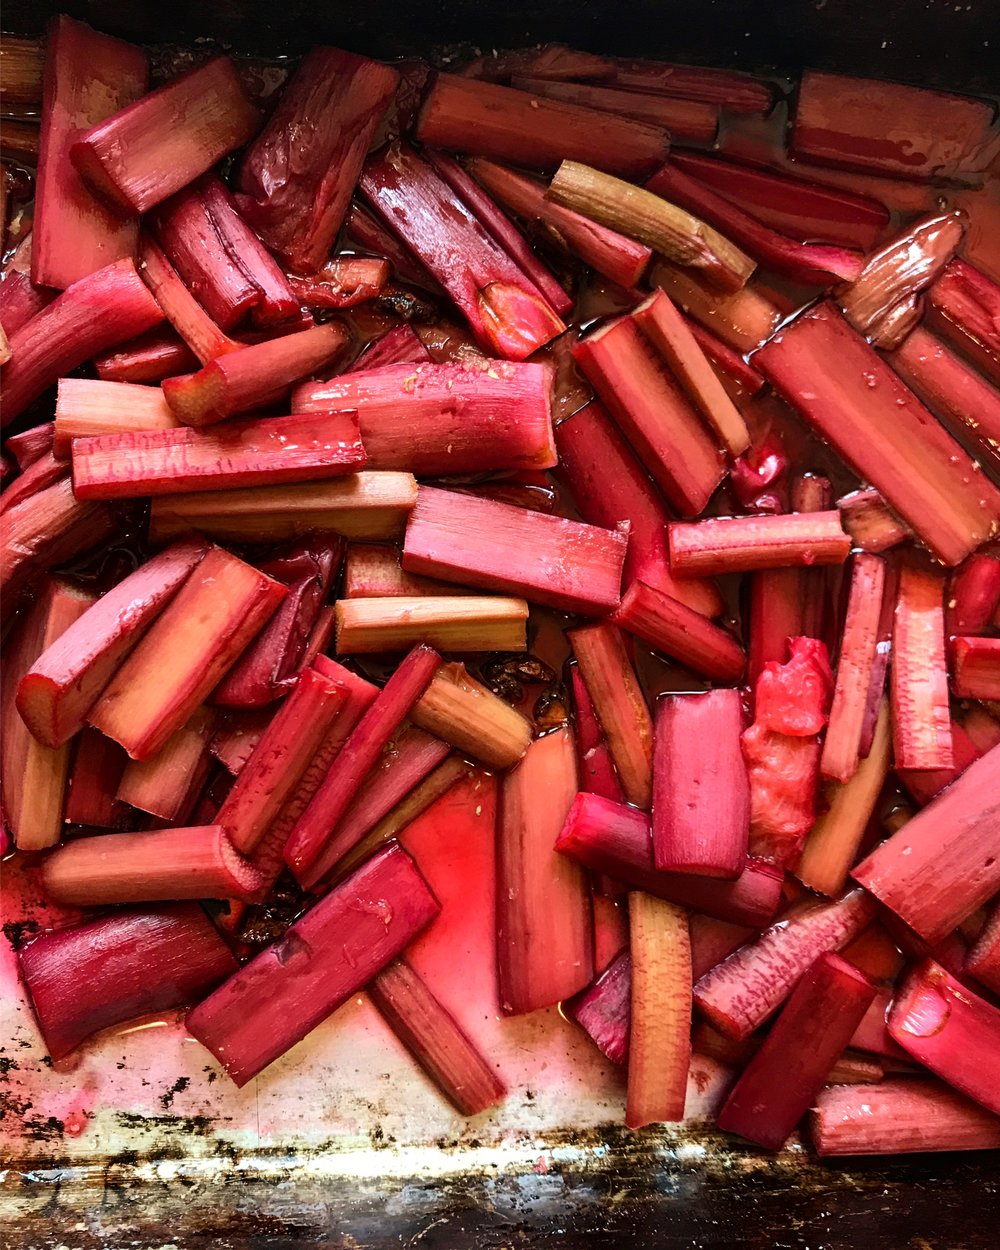 A glut of rhubarb, roasted with ginger and star anise.